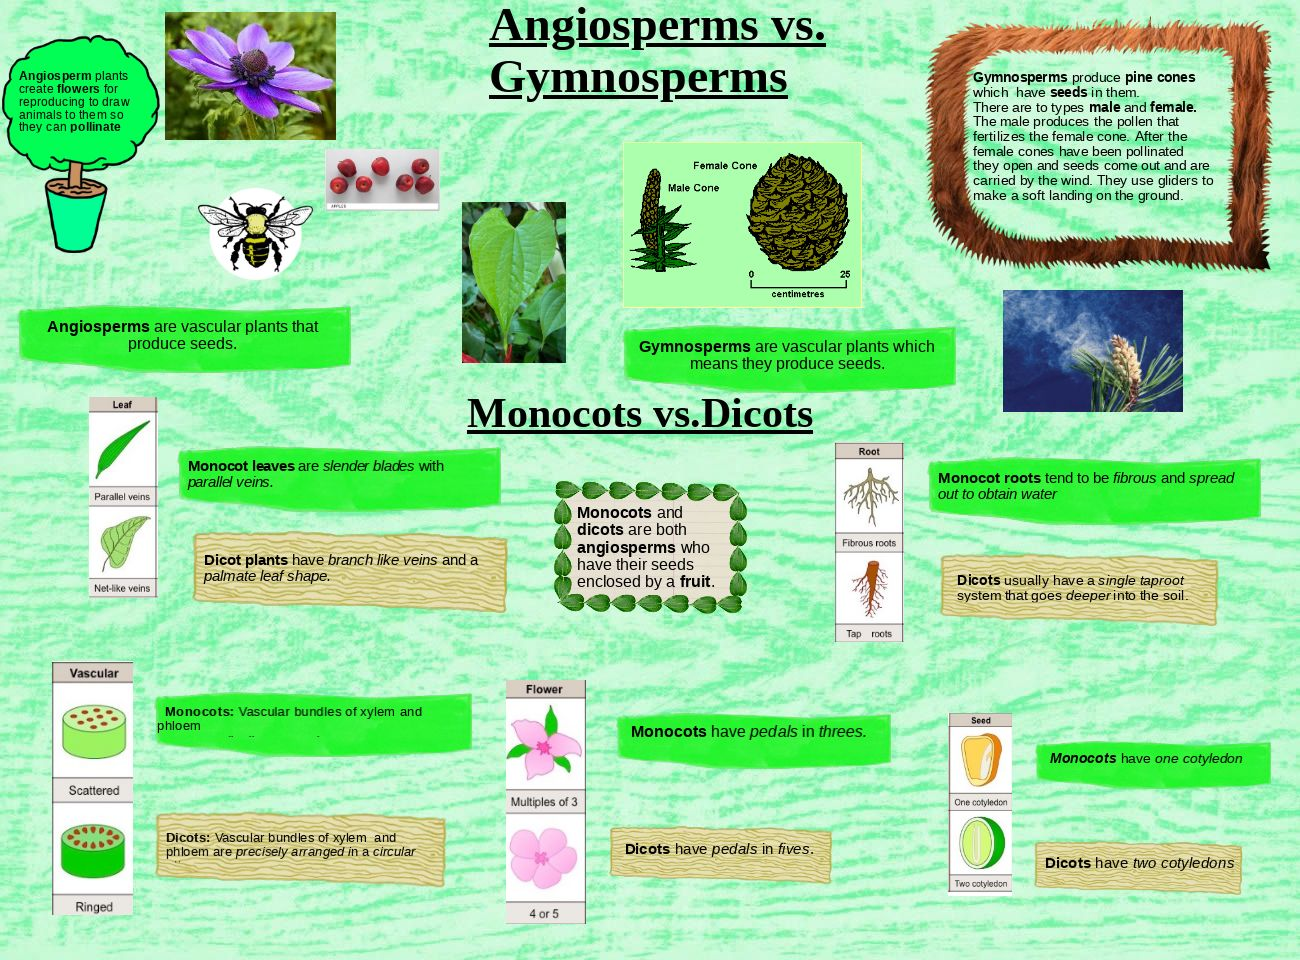 Angiosperms vs Gymnosperms & Monocots vs Dicots